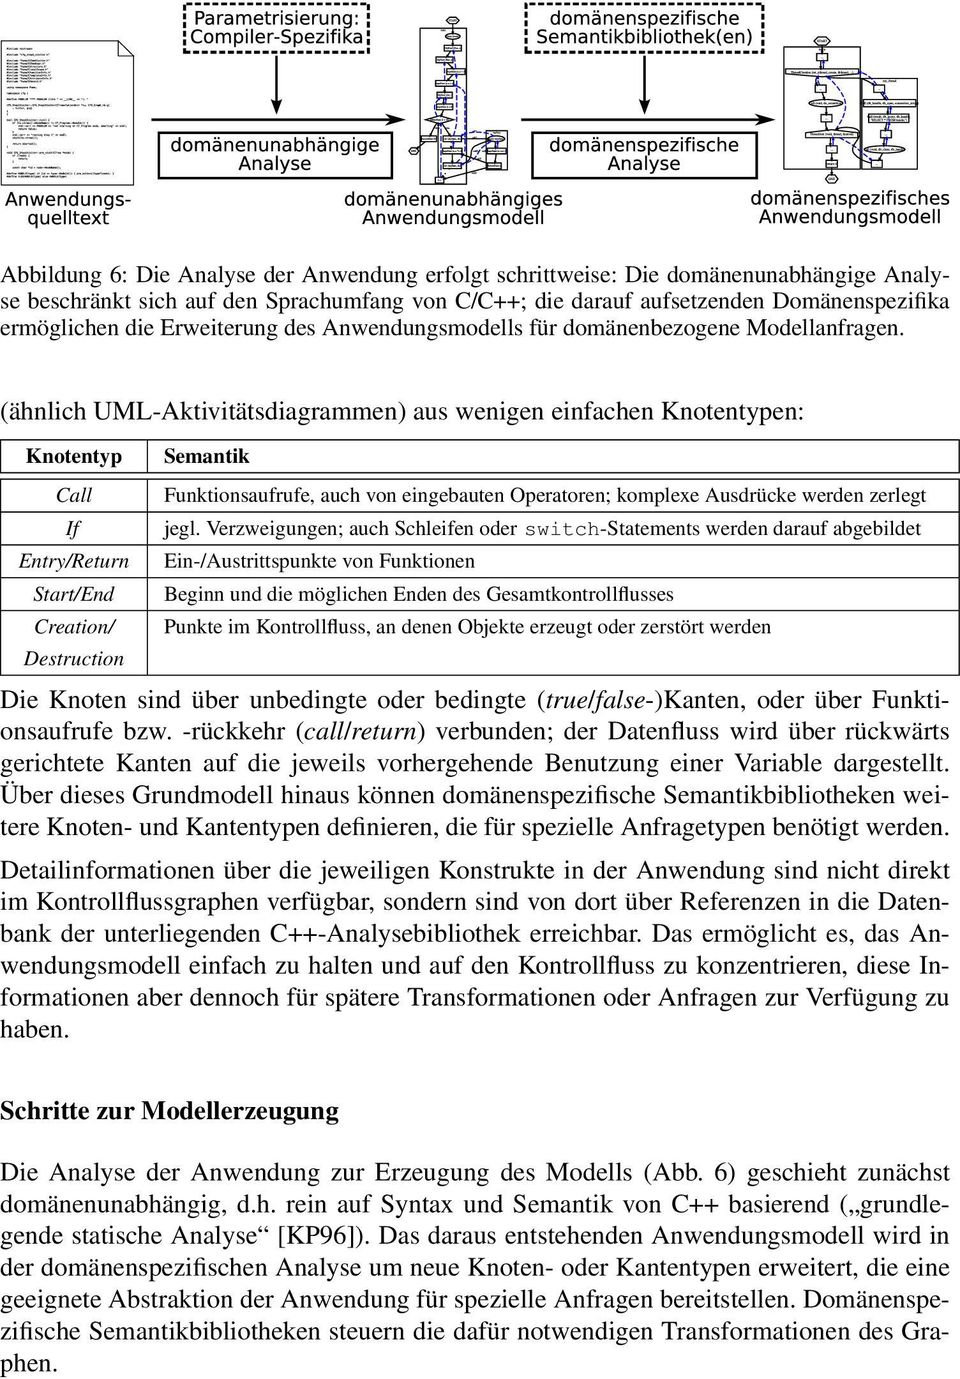 (ähnlich UML-Aktivitätsdiagrammen) aus wenigen einfachen Knotentypen: Knotentyp Call If Entry/Return Start/End Creation/ Destruction Semantik Funktionsaufrufe, auch von eingebauten Operatoren;